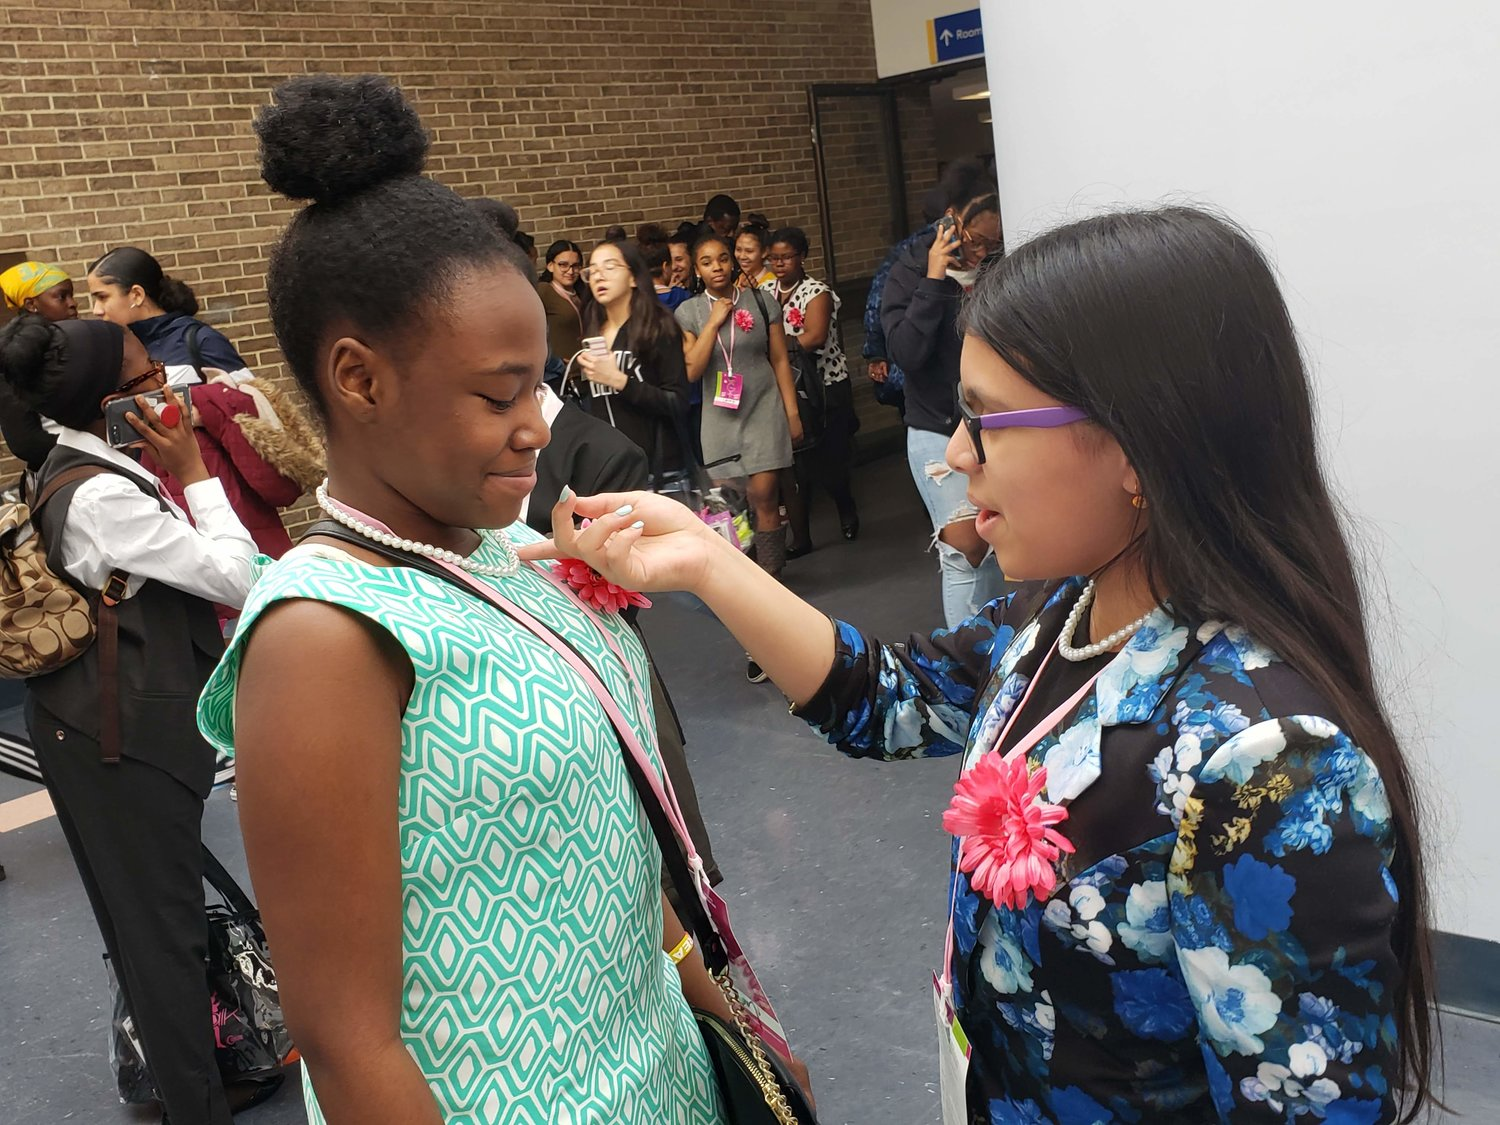 Dodd seventh grader Valeria Pizarro Torres, right, complimented eighth grader Willana Seree's pearl necklace after the closing ceremony of the Girlz Talk conference.